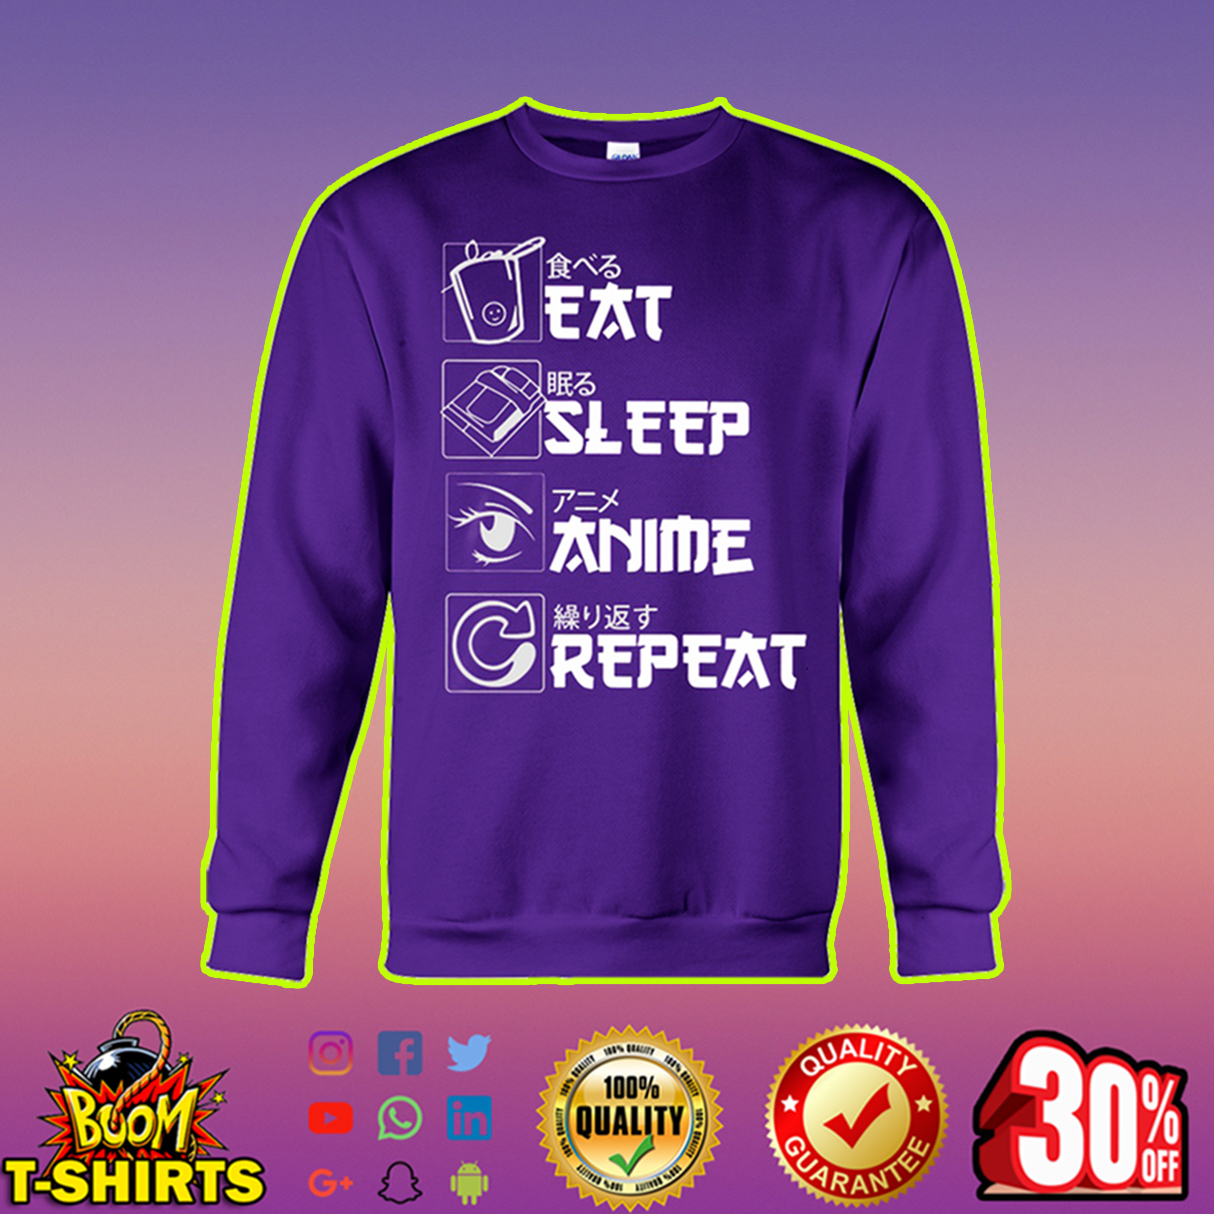 Eat sleep anime repeat sweatshirt